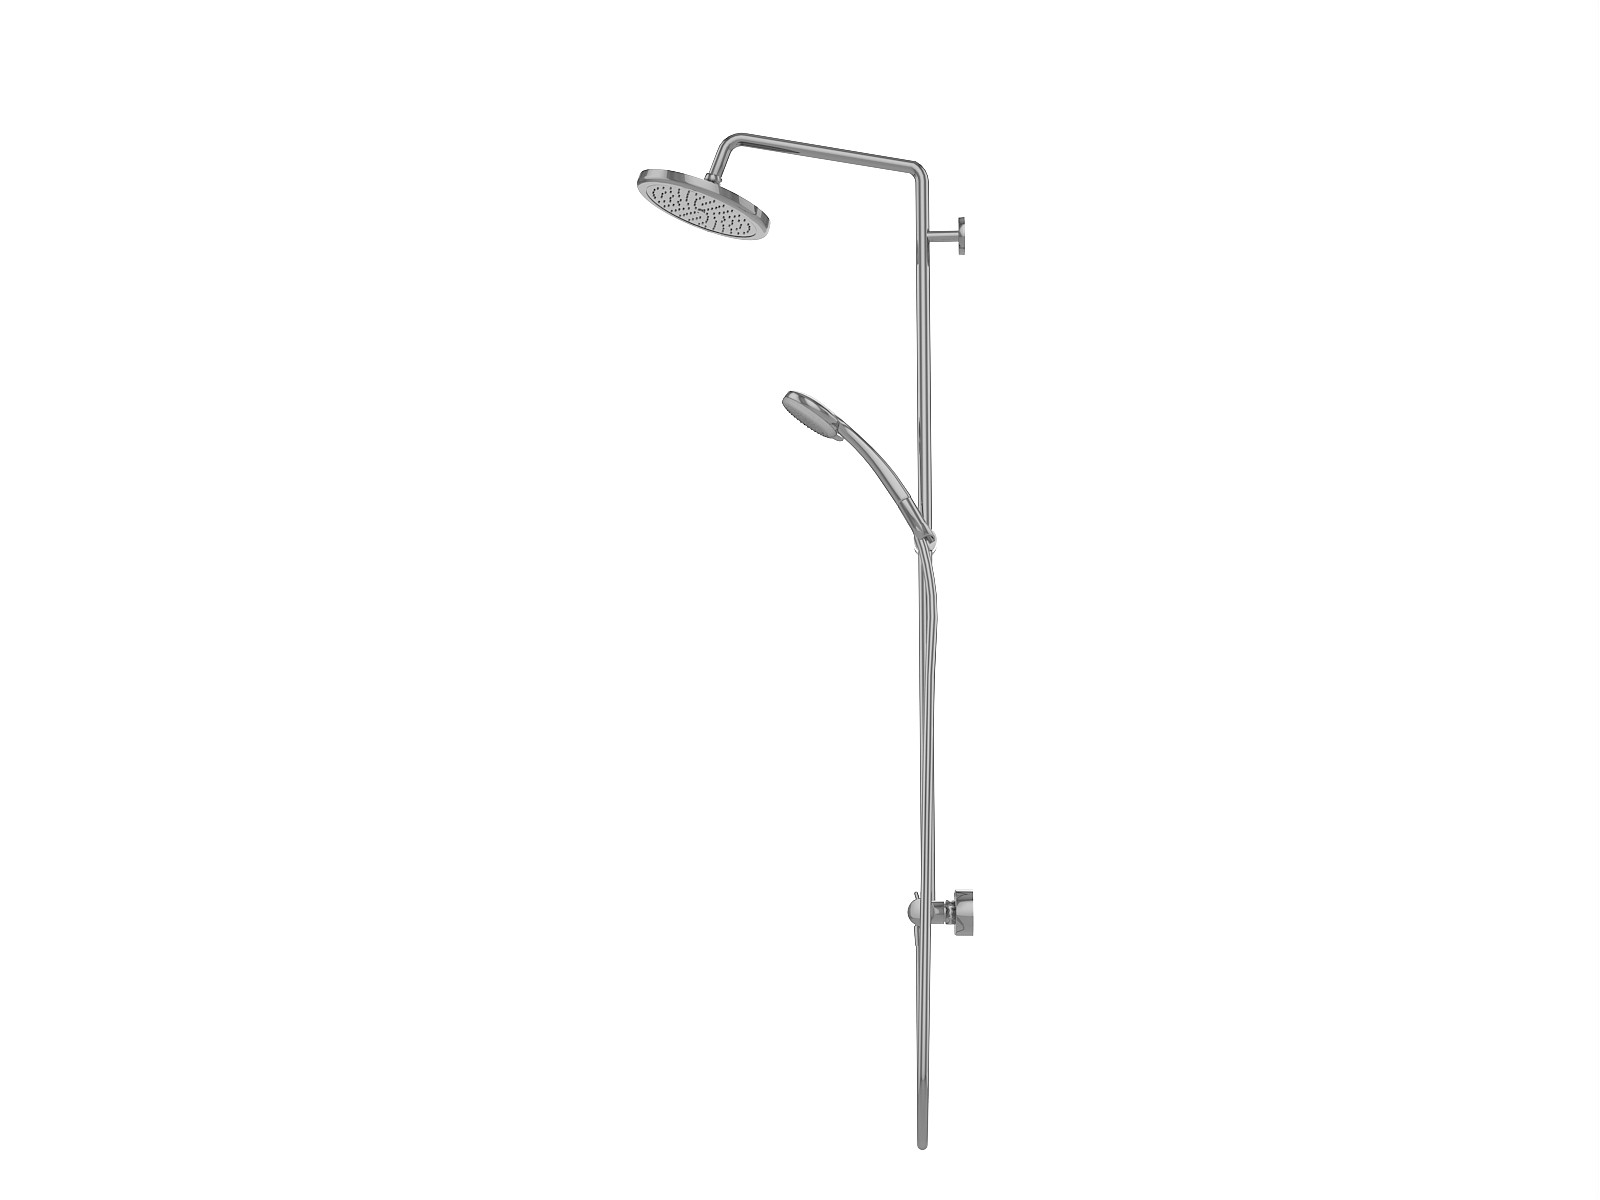 hansgrohe croma shower system showerpipe 220 air 1jet. Black Bedroom Furniture Sets. Home Design Ideas